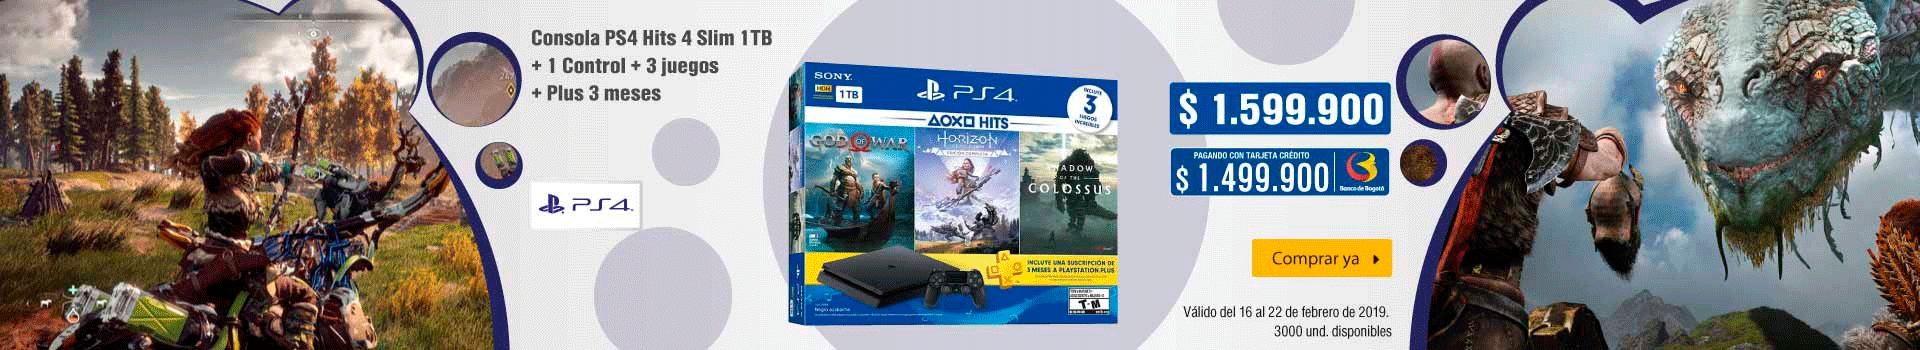 AK-KT-BCAT-5-VIDEOJ-PP-PLAYSTATION-PLAY_HITS-FEBRERO-16